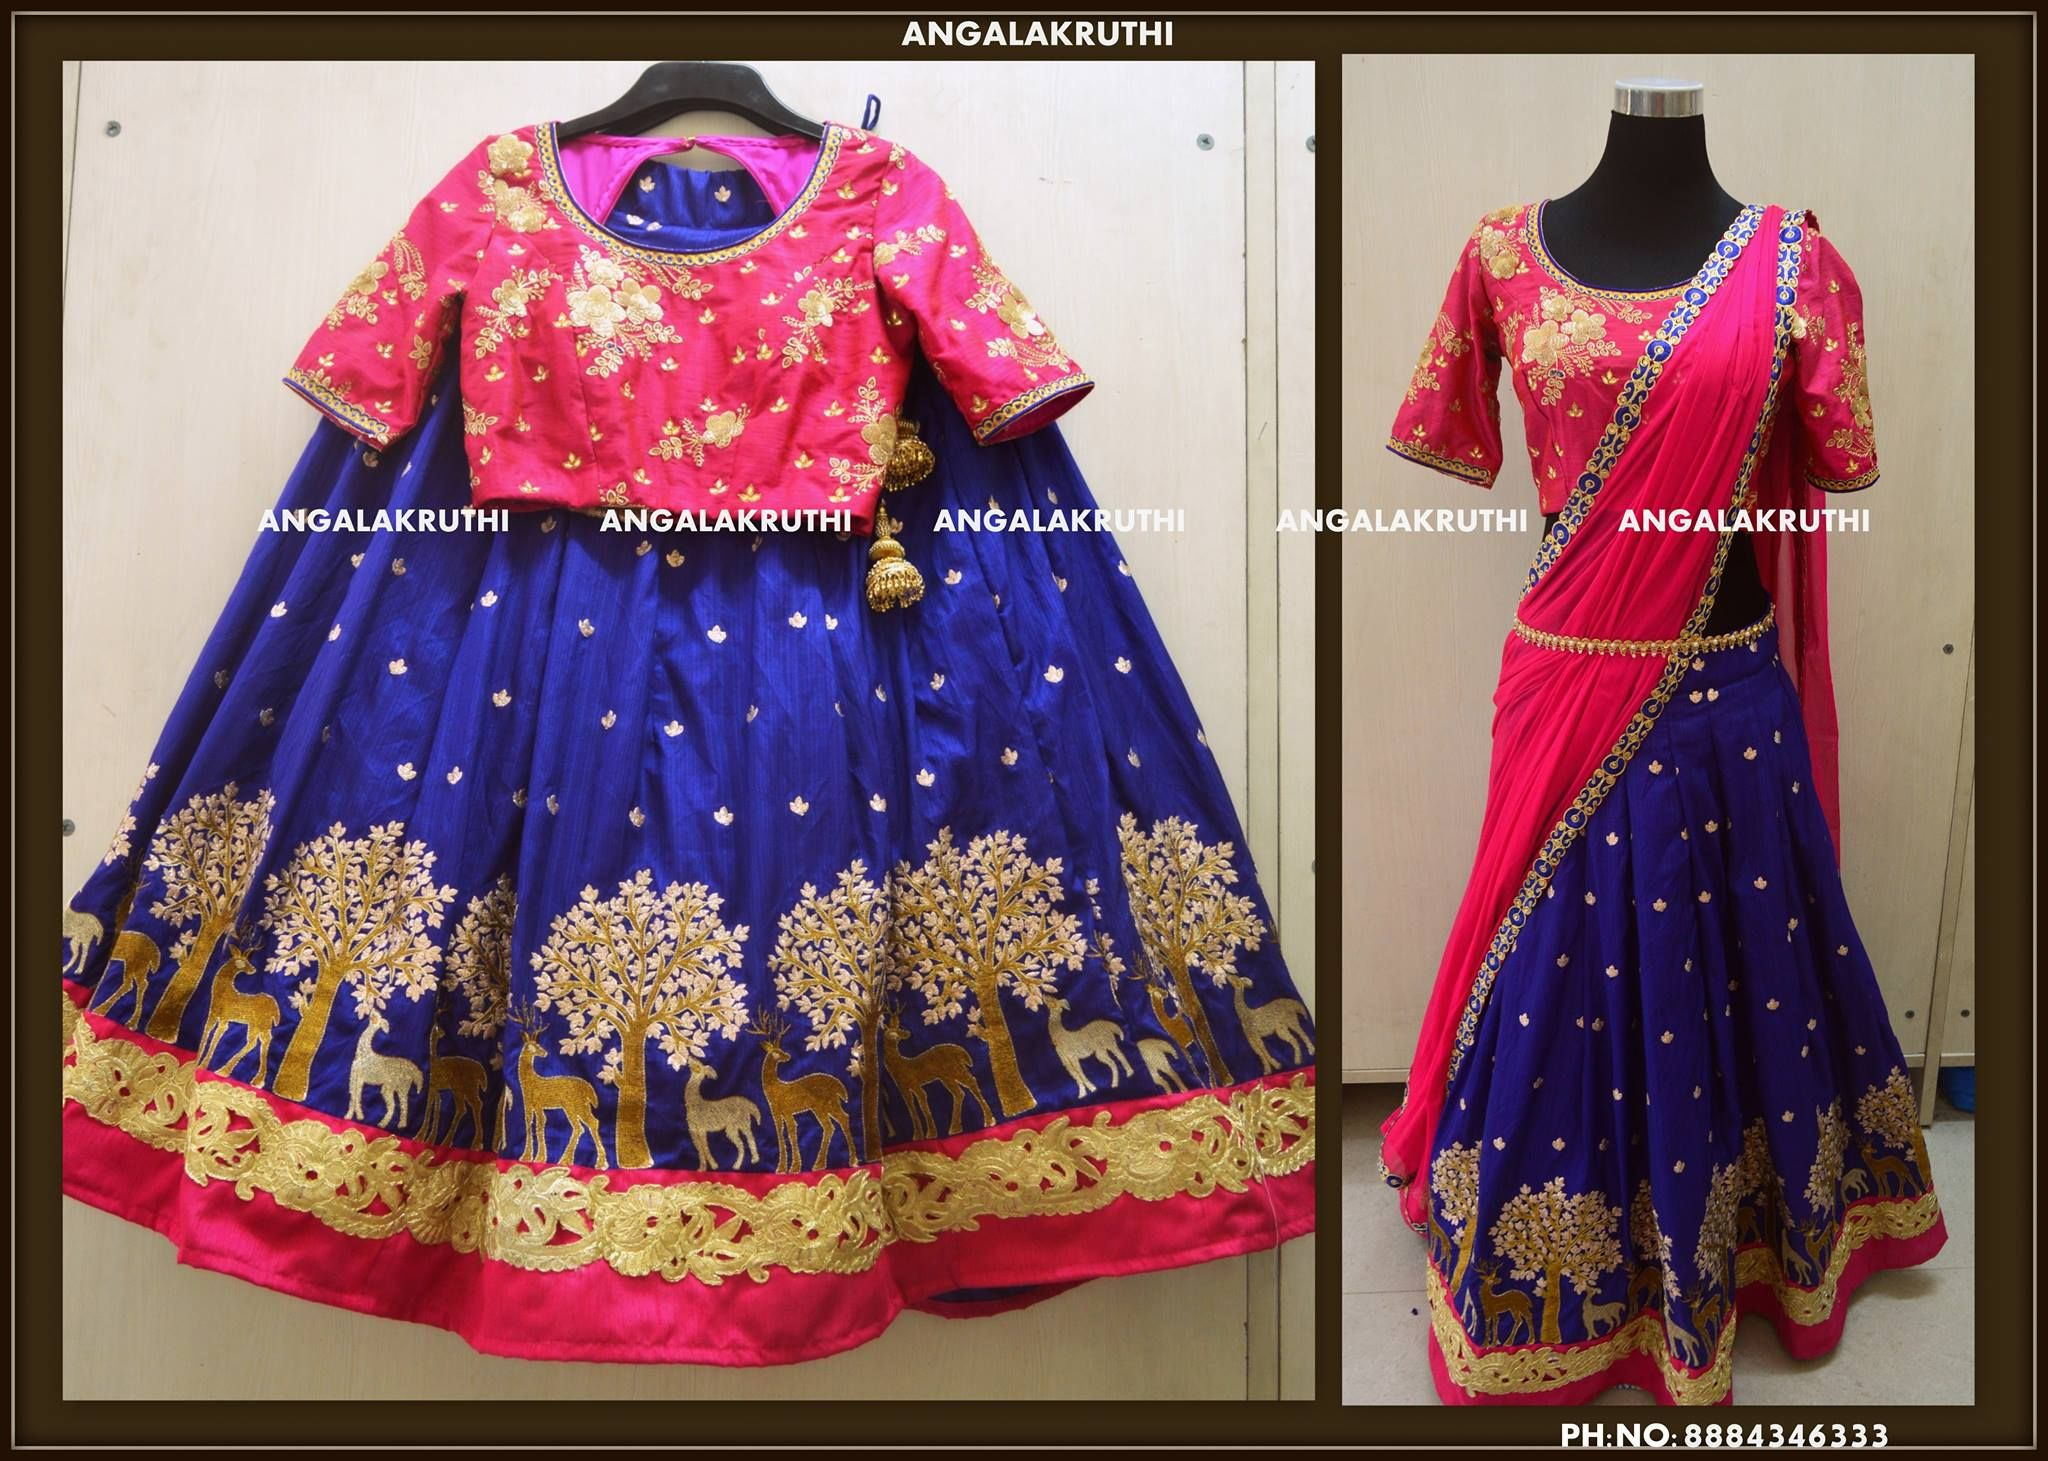 Beautiful mother and daughter duo from Angalakruthi. Gorgeous blue color lehenga with forest look design and pink color designer blouse.